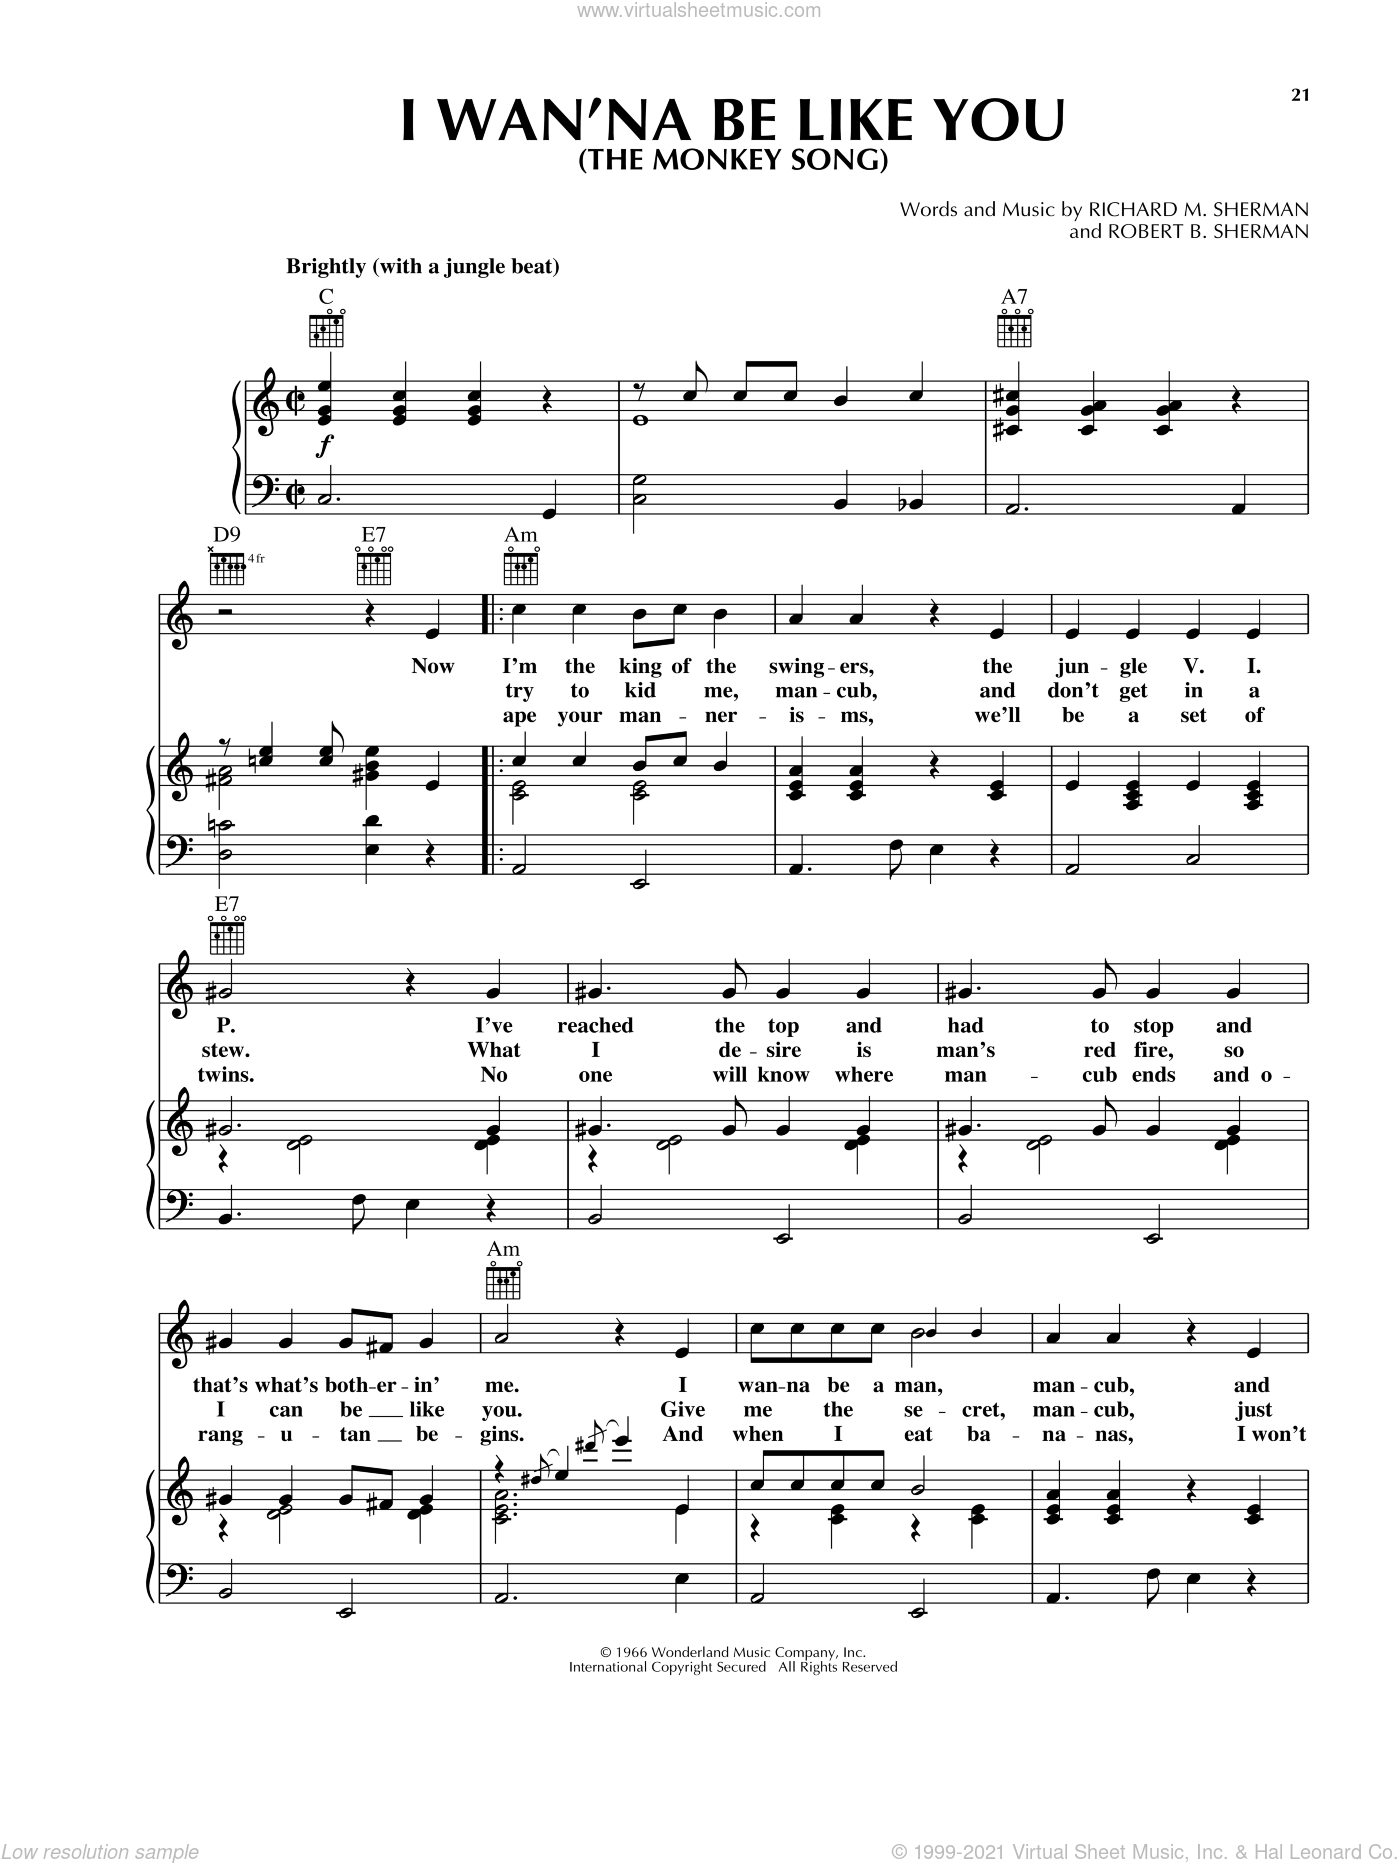 I Wan'na Be Like You (The Monkey Song) sheet music for voice, piano or guitar by Robert B. Sherman